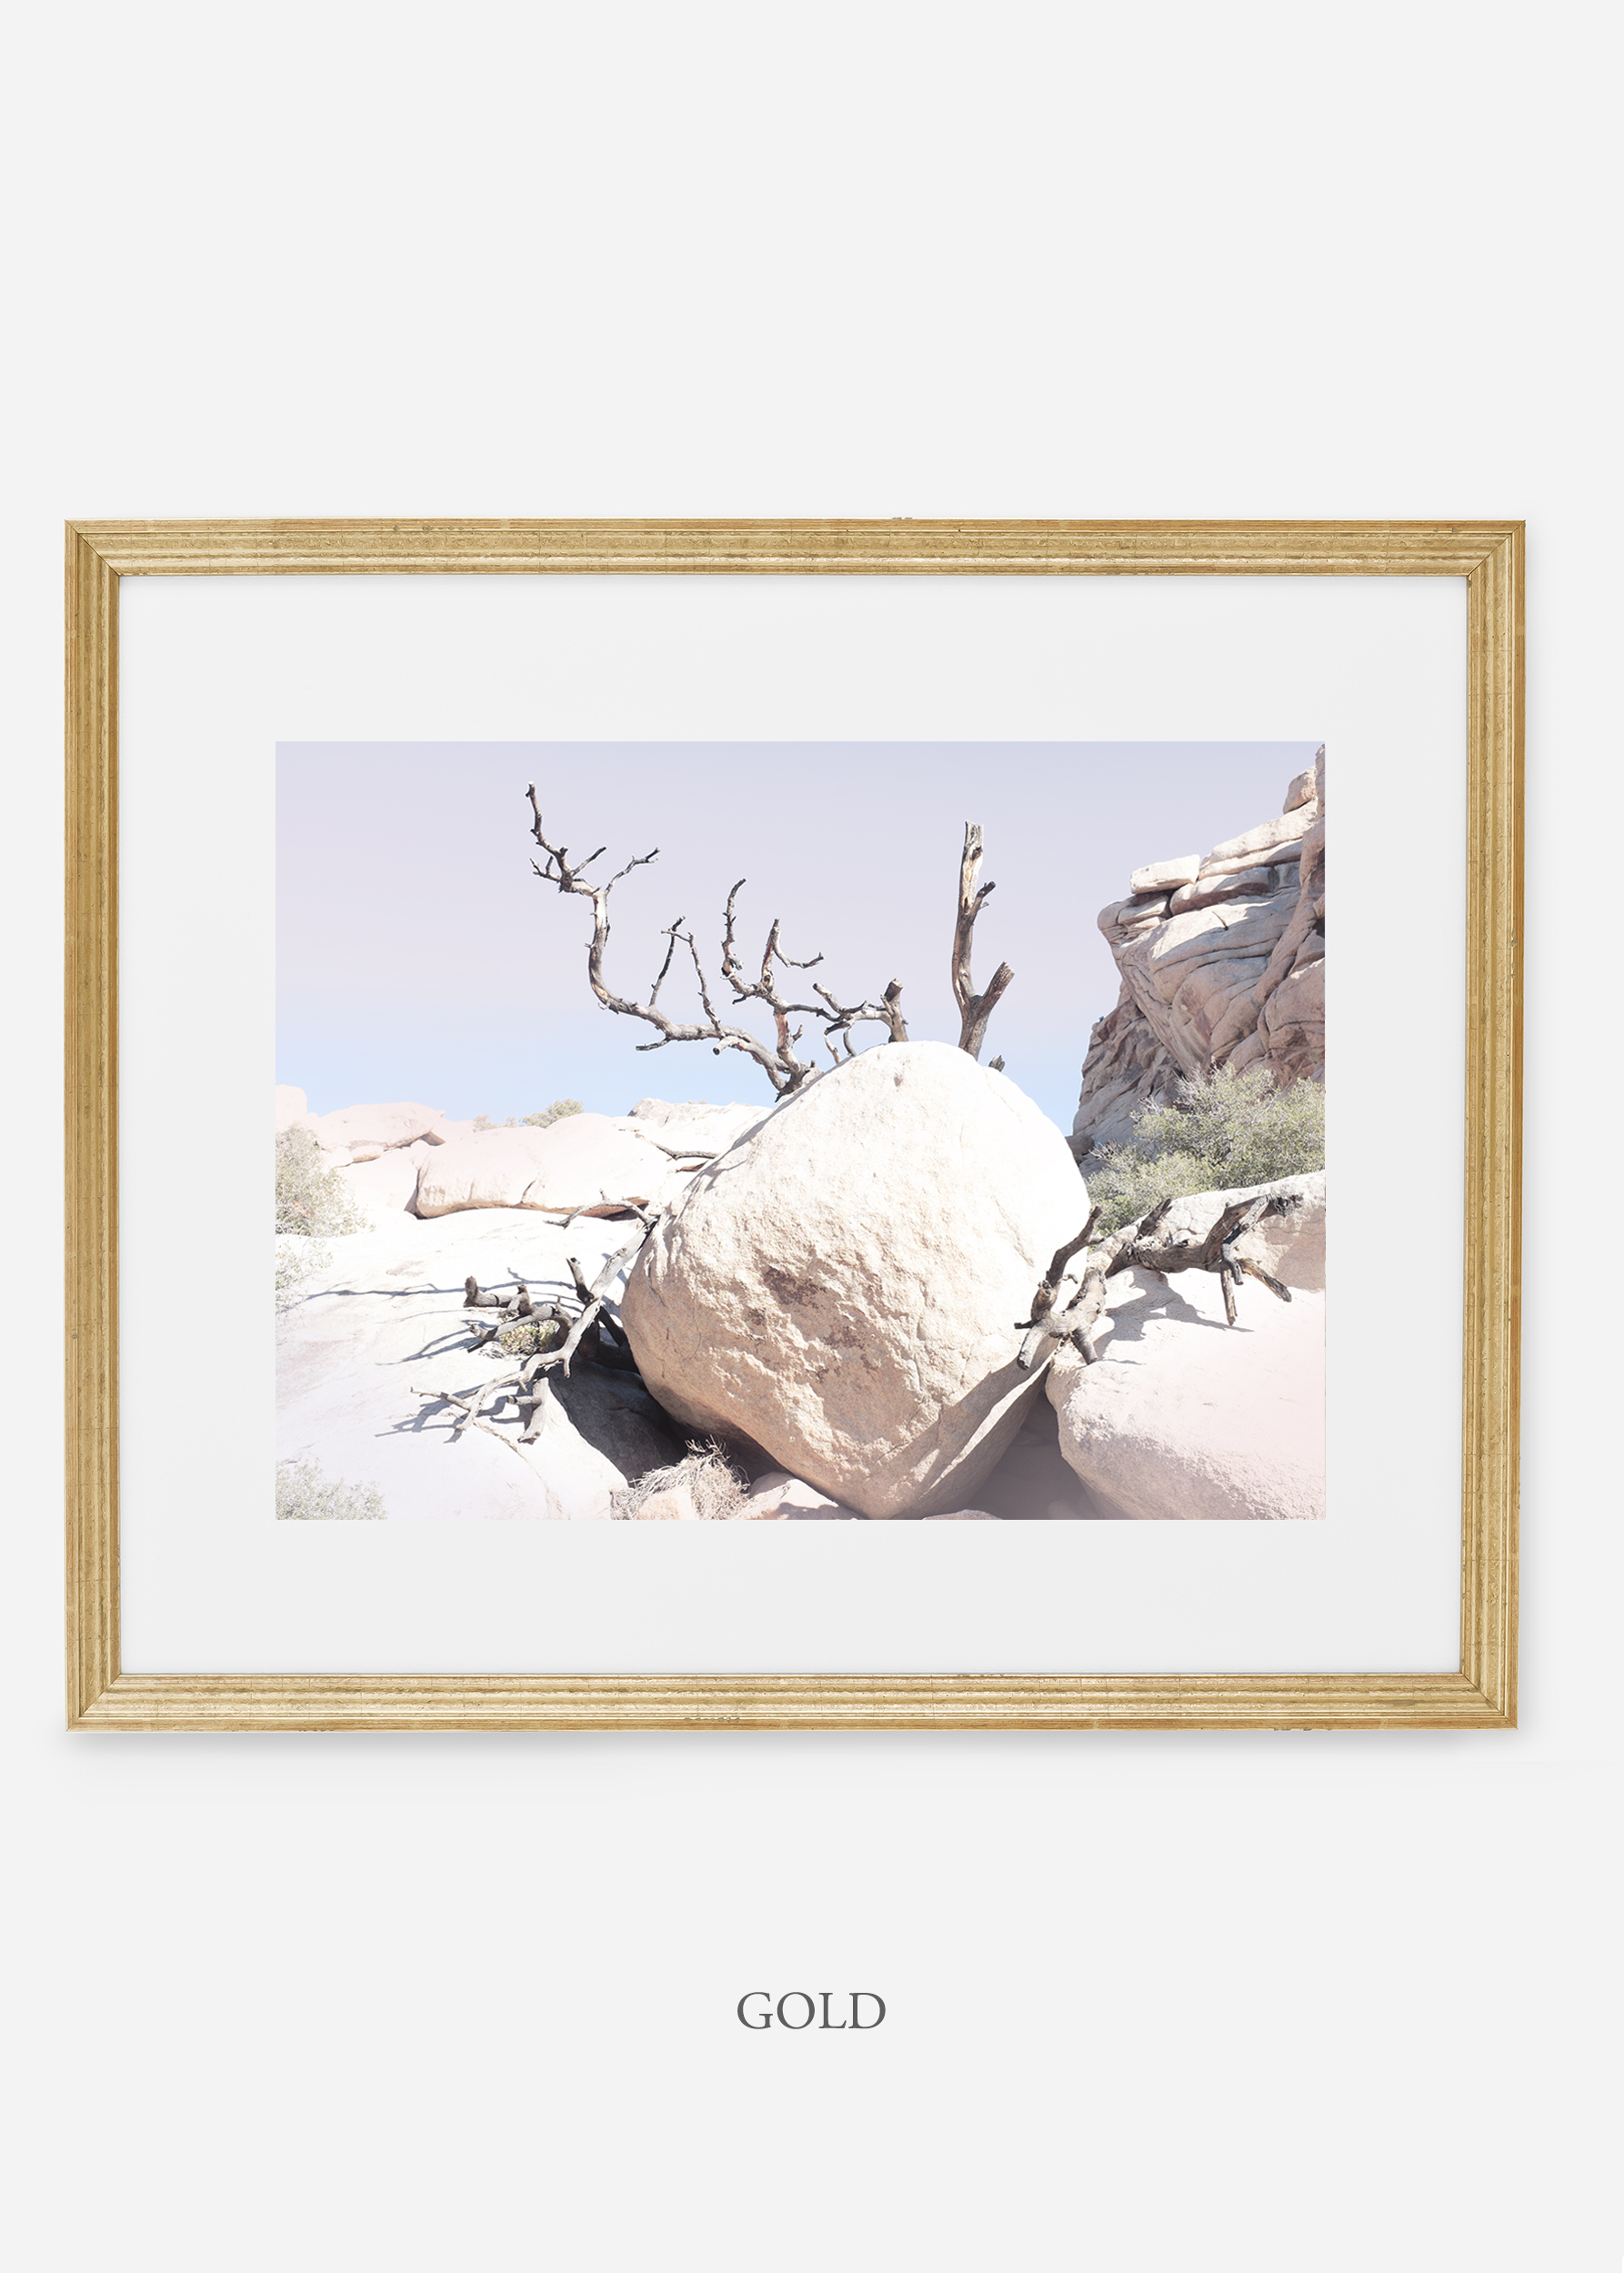 WilderCalifornia_gold_JoshuaTree_No.17_interiordesign_prints_art.jpg